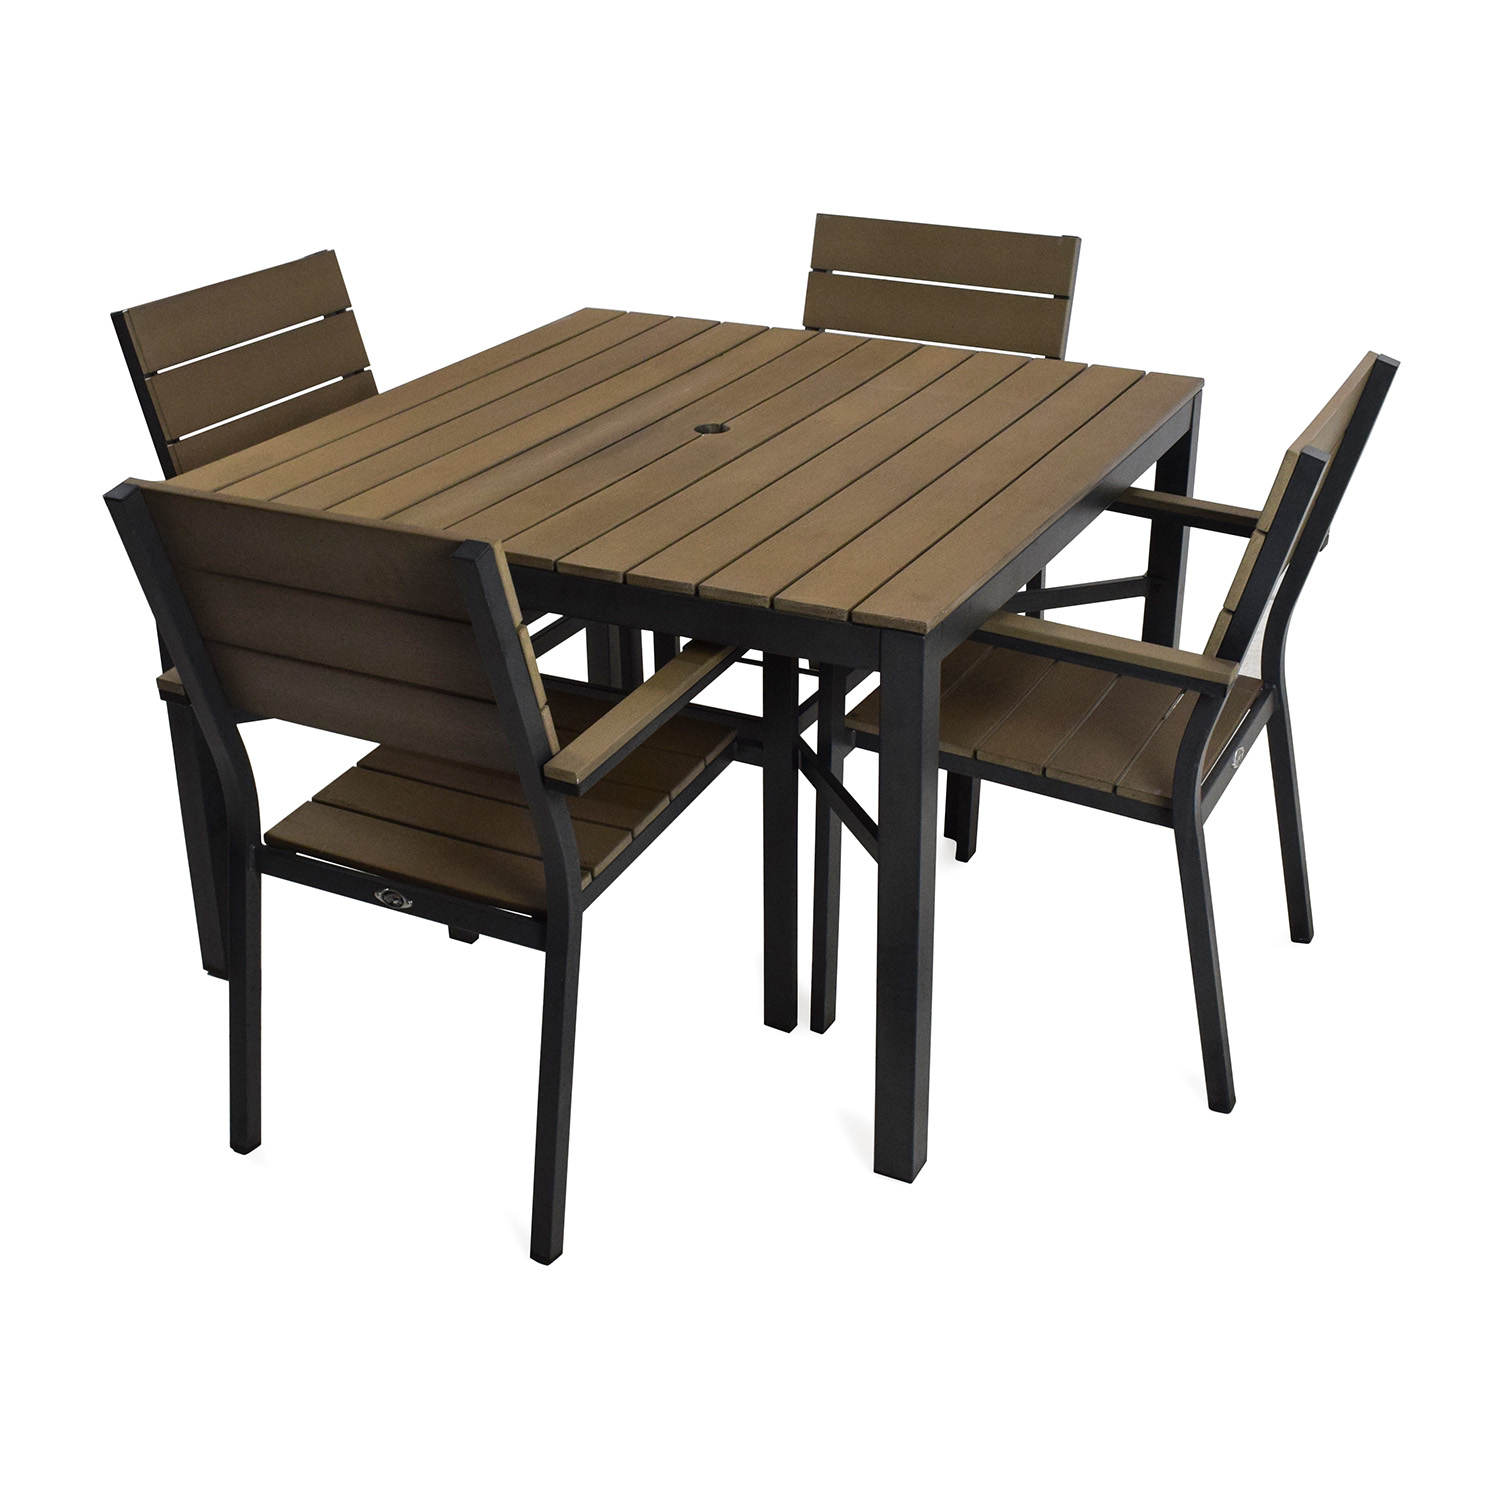 ... Hampton Bay Northridge 5 Piece Patio Dining Set Sale ...